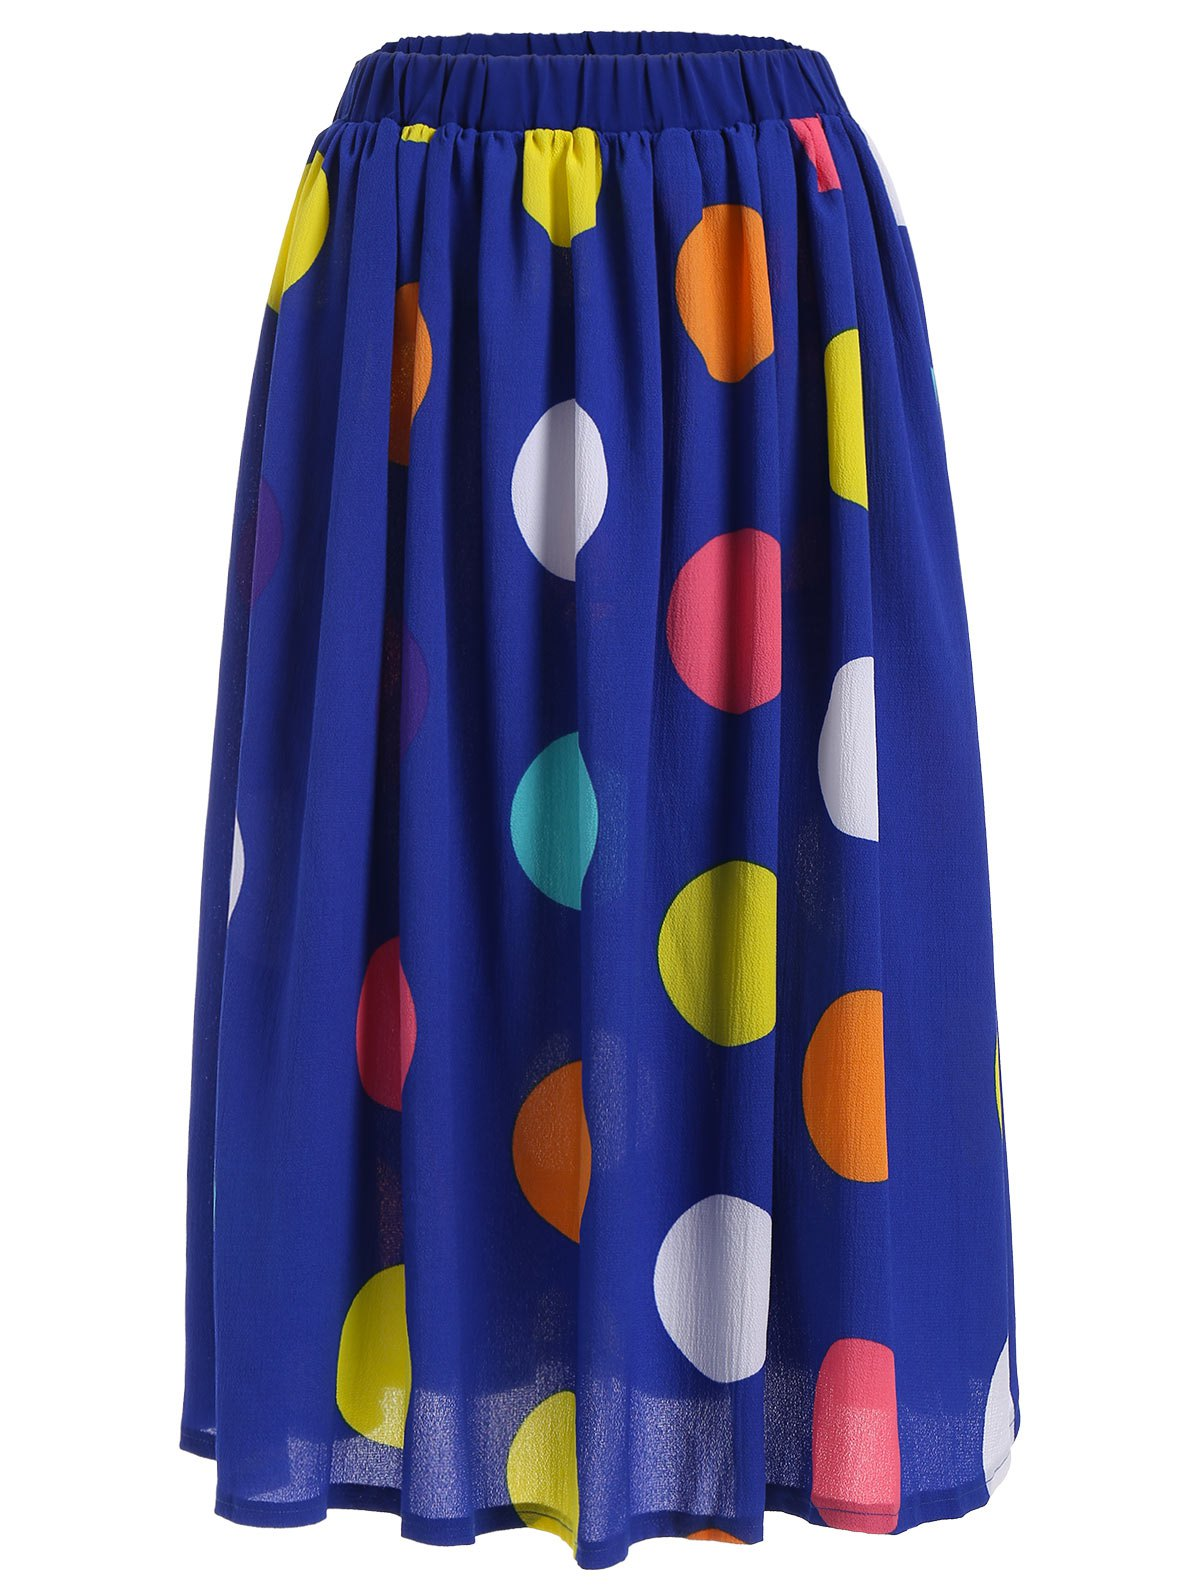 Big Polka Dot Print Elastic Waisted Midi Skirt - BLUE XL